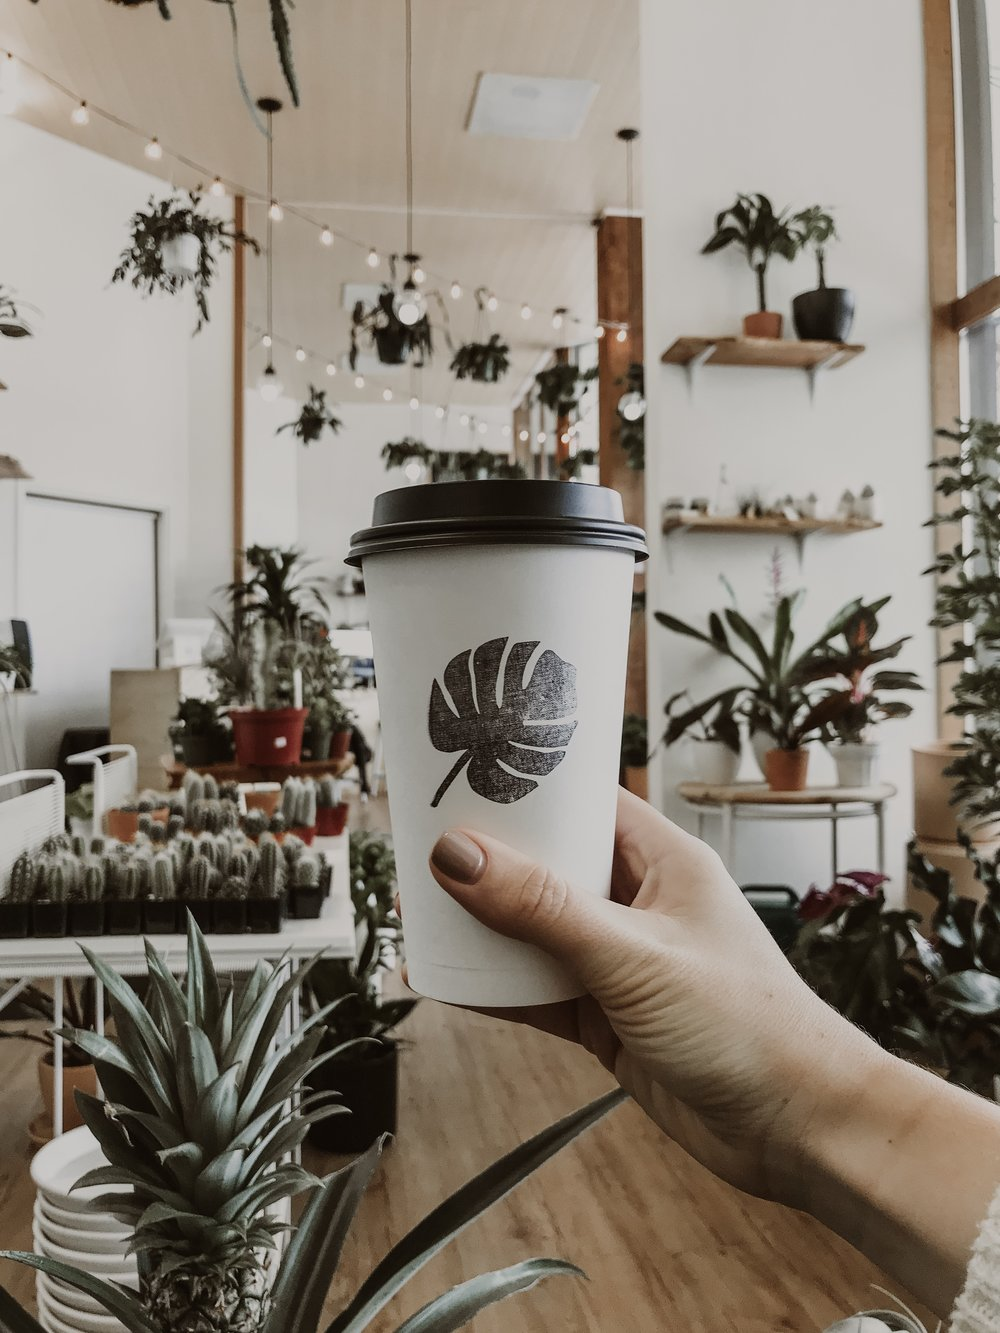 Look at that pineapple plant! DRINK CHOICE: OAT MILK MOCHA